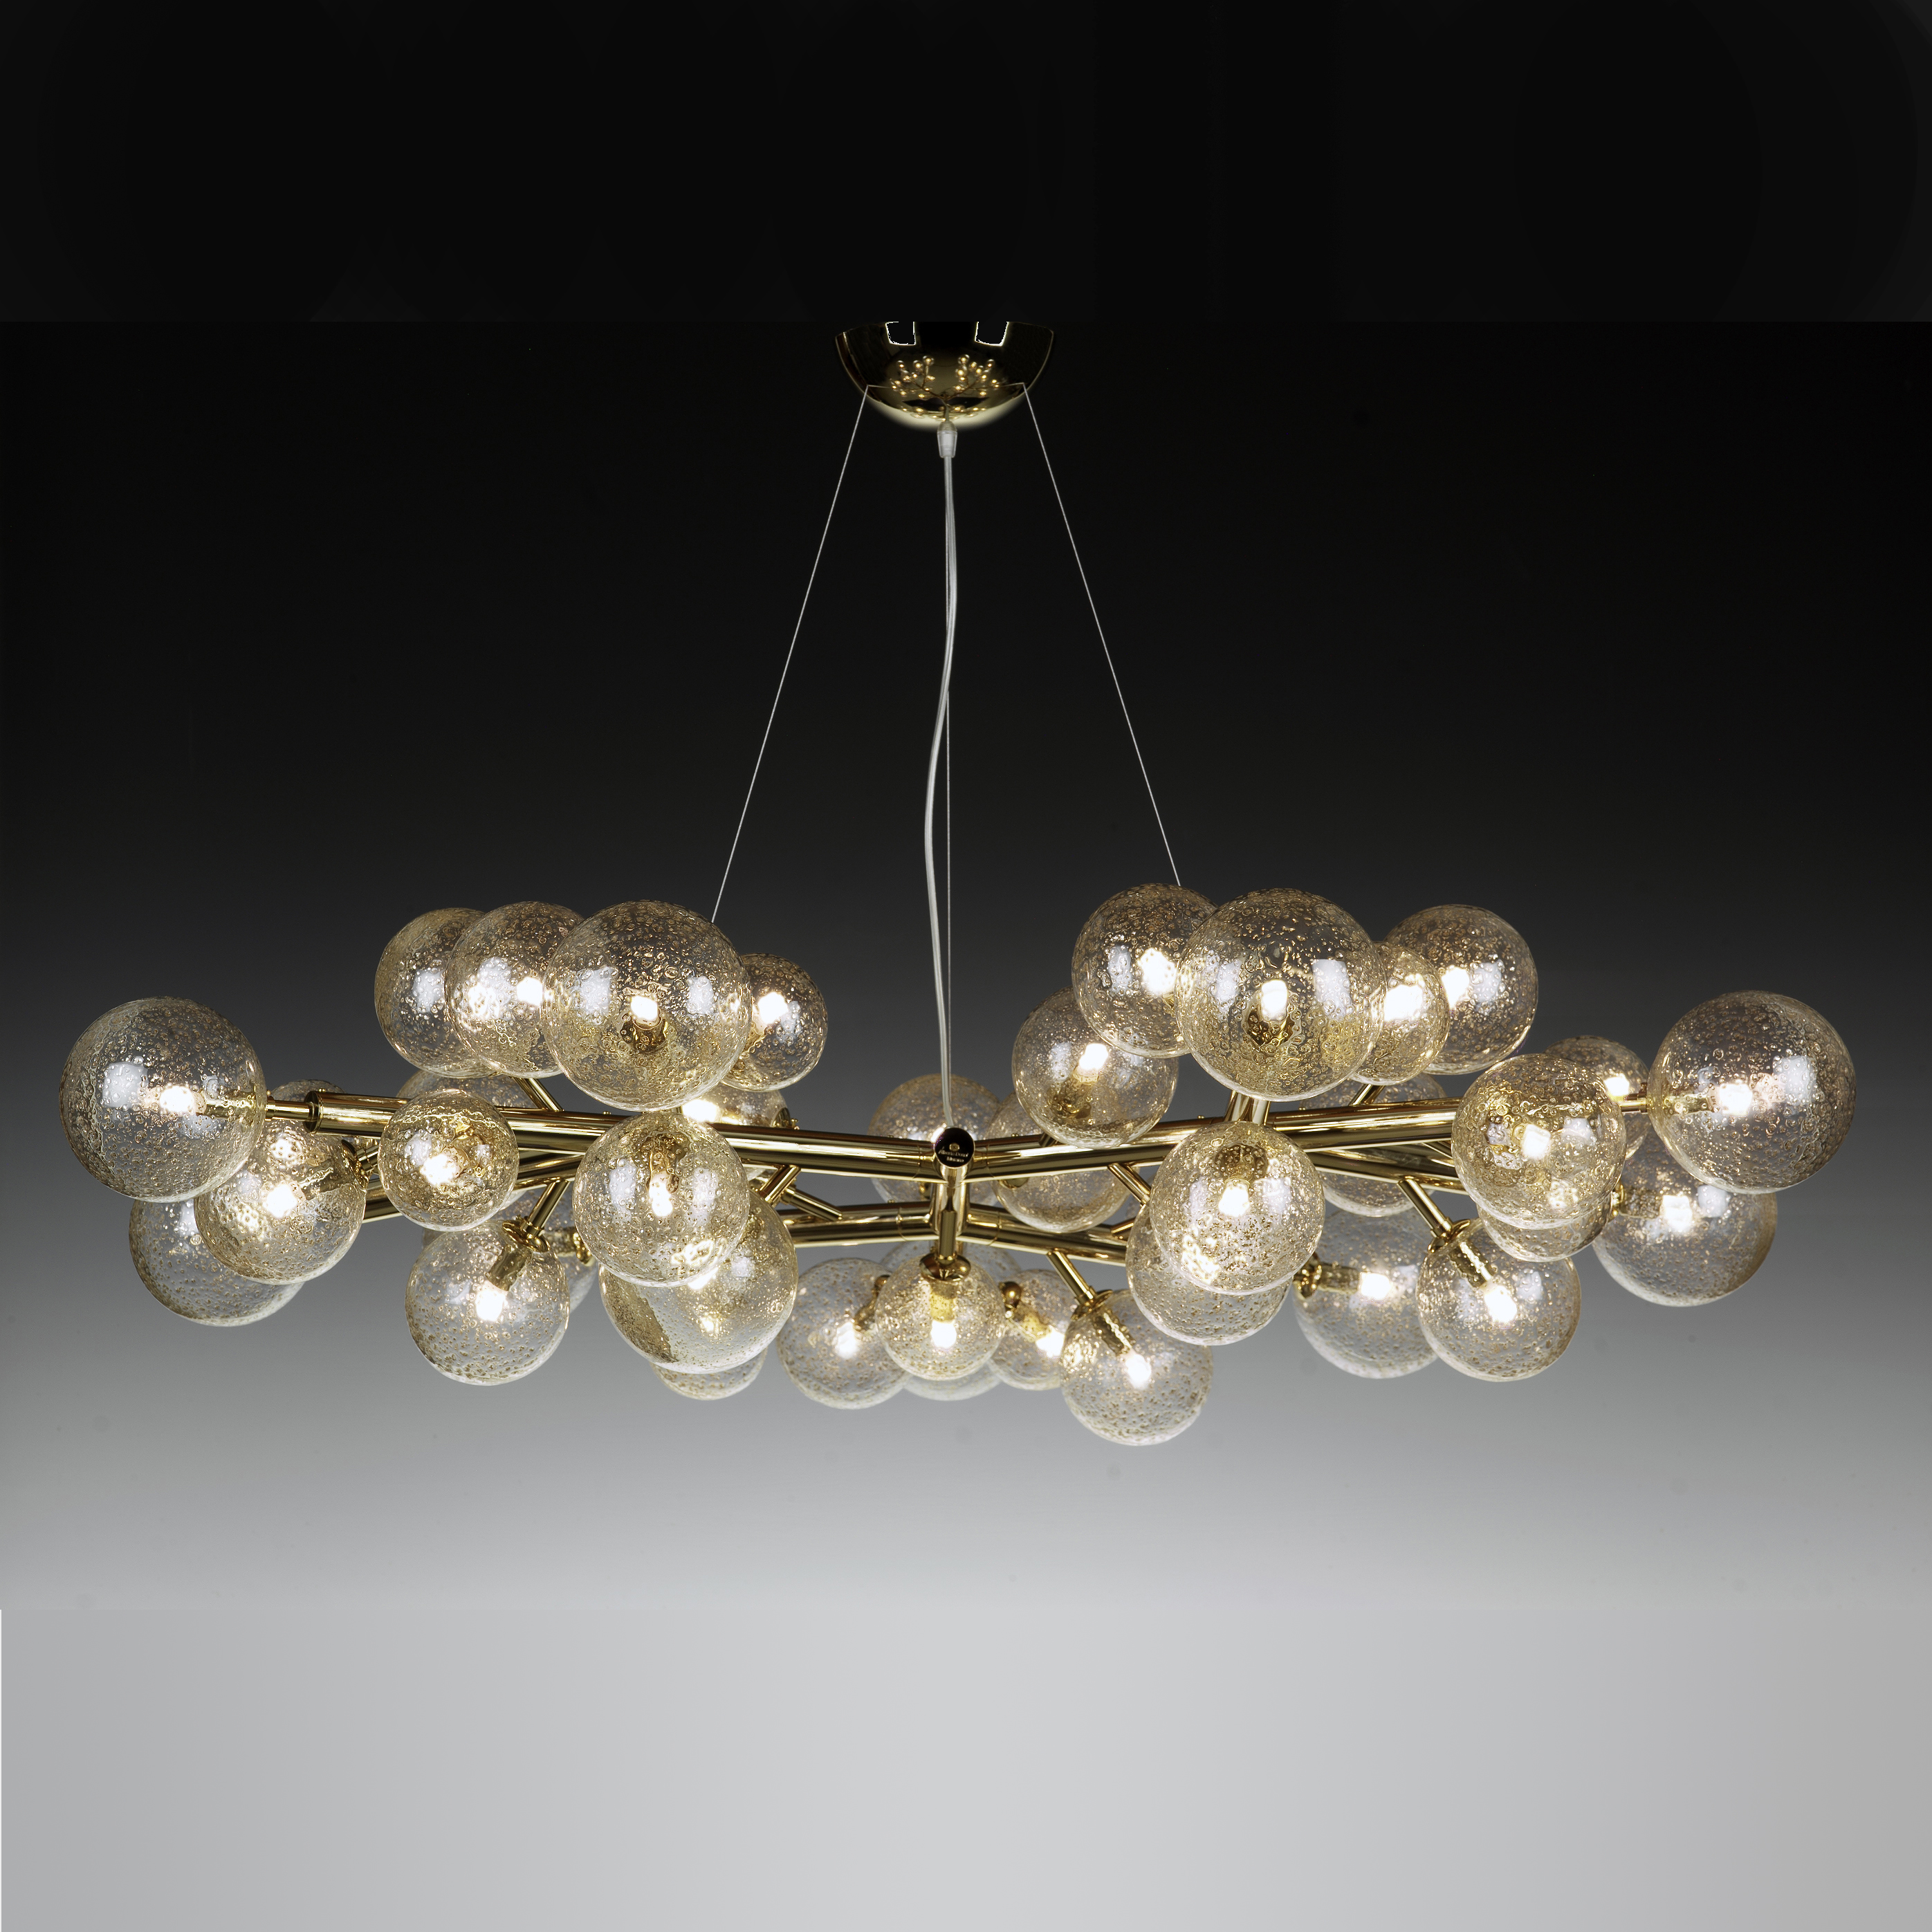 Mimosa 42 Brass Chandelier - This chandelier, designed and realised by the glassmaster Alberto Donà , is totally different from our classic collection. Its peculiarity is the simplicity of the frame decorated with 42 glass spheres – that during blowing are decorated by the master adding  gold, copper or brass powder. The result is a simple but impressive chandelier especially when lighted. Each sphere has a G9 2.5w bulb. Chandeliers are available in different sizes.